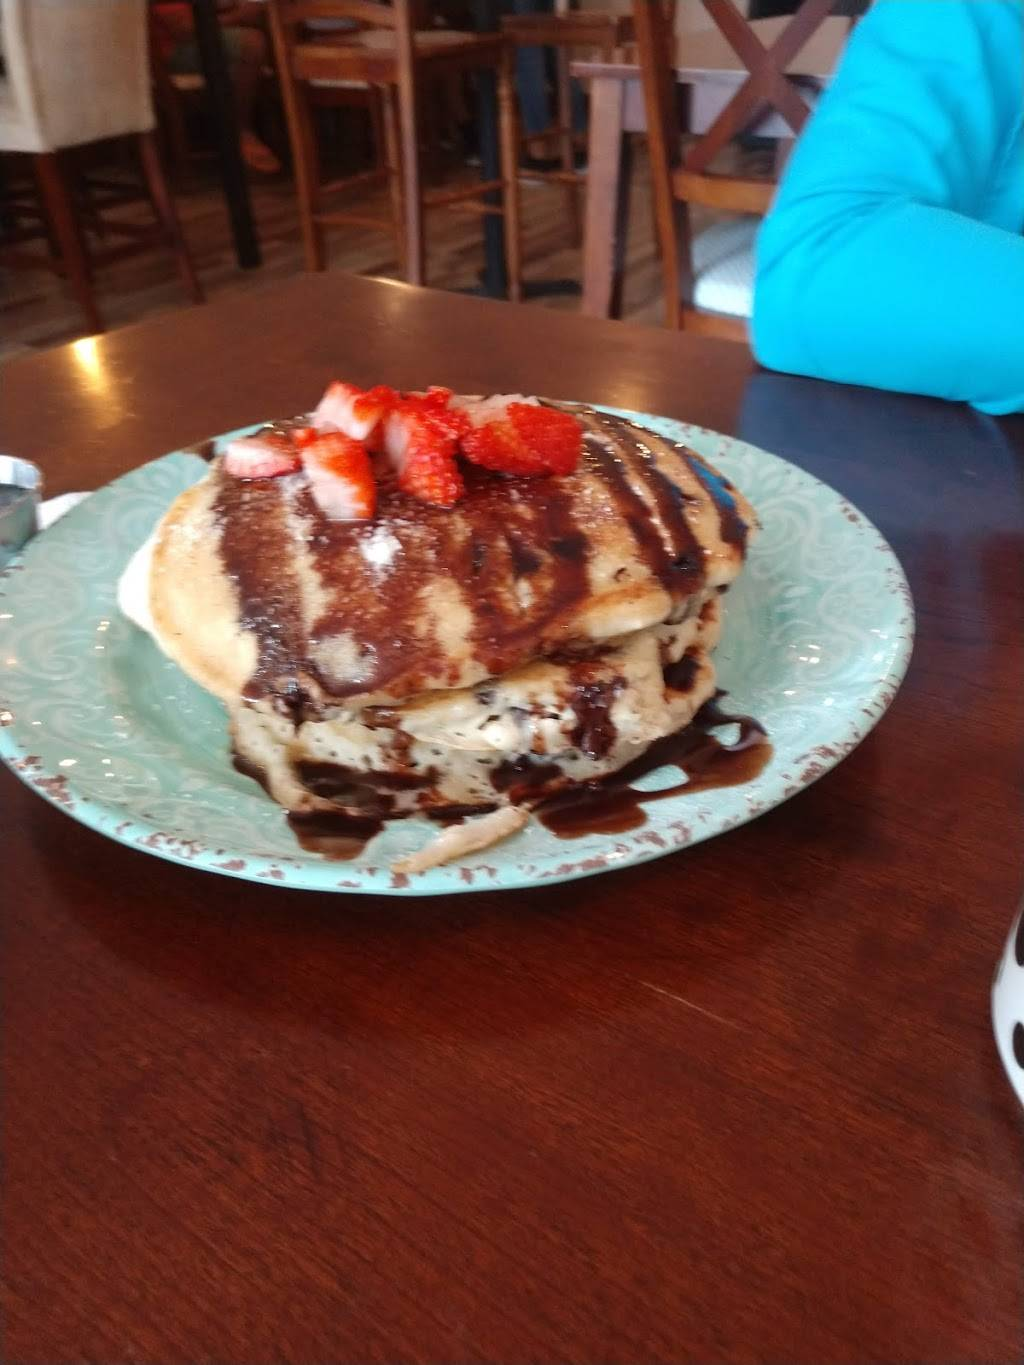 Yours and Mine Cafe and Bakery | restaurant | 2104, 132 E College St, Covina, CA 91723, USA | 6263319095 OR +1 626-331-9095